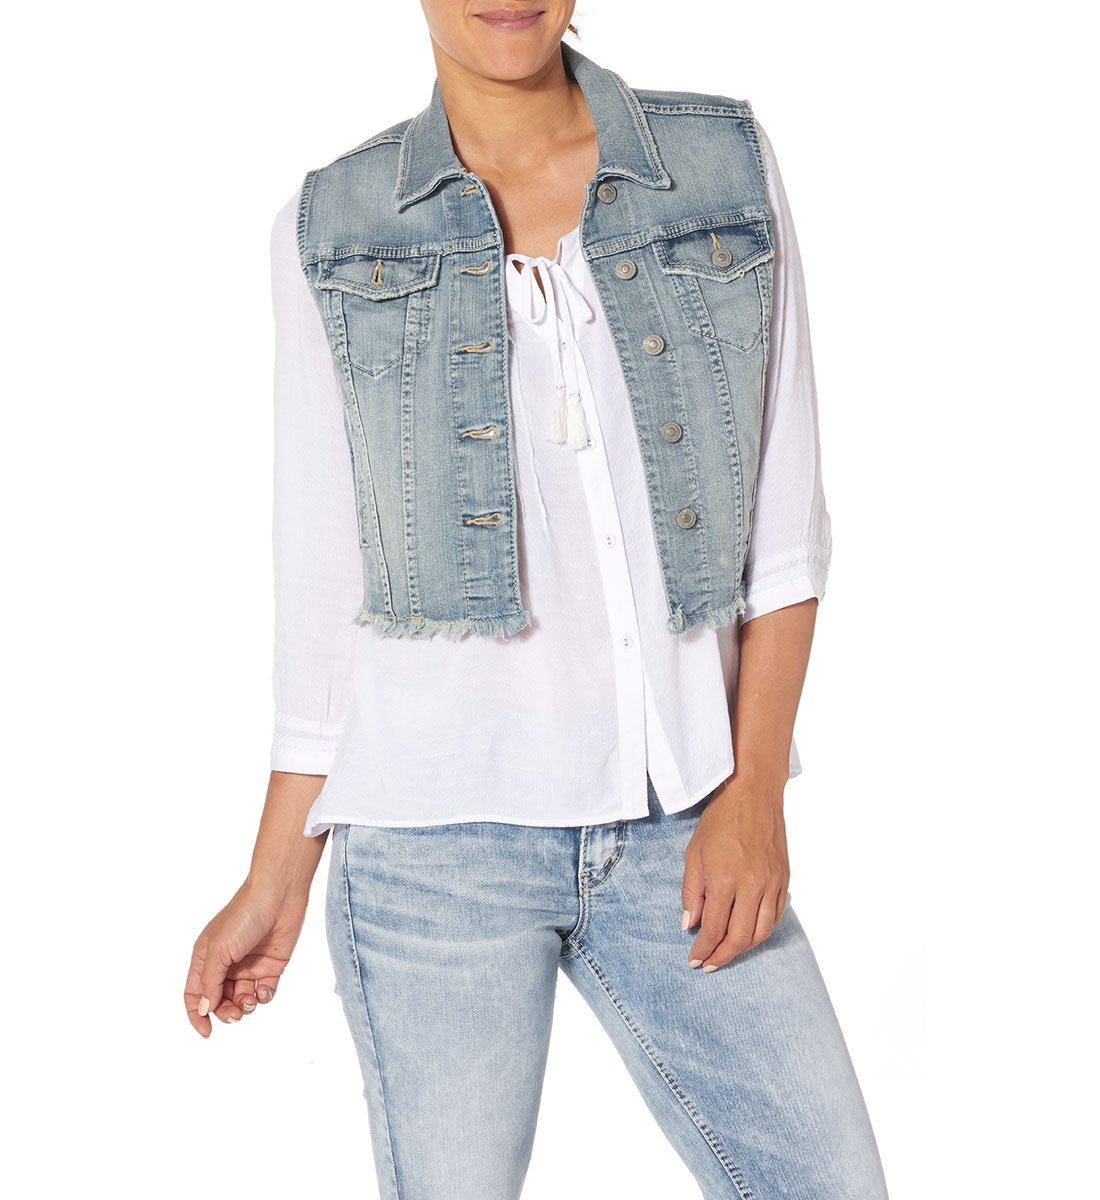 Silver Jeans Women's Cropped Denim Vest with Fray Hem, Indigo, L by Silver Jeans Co. (Image #1)